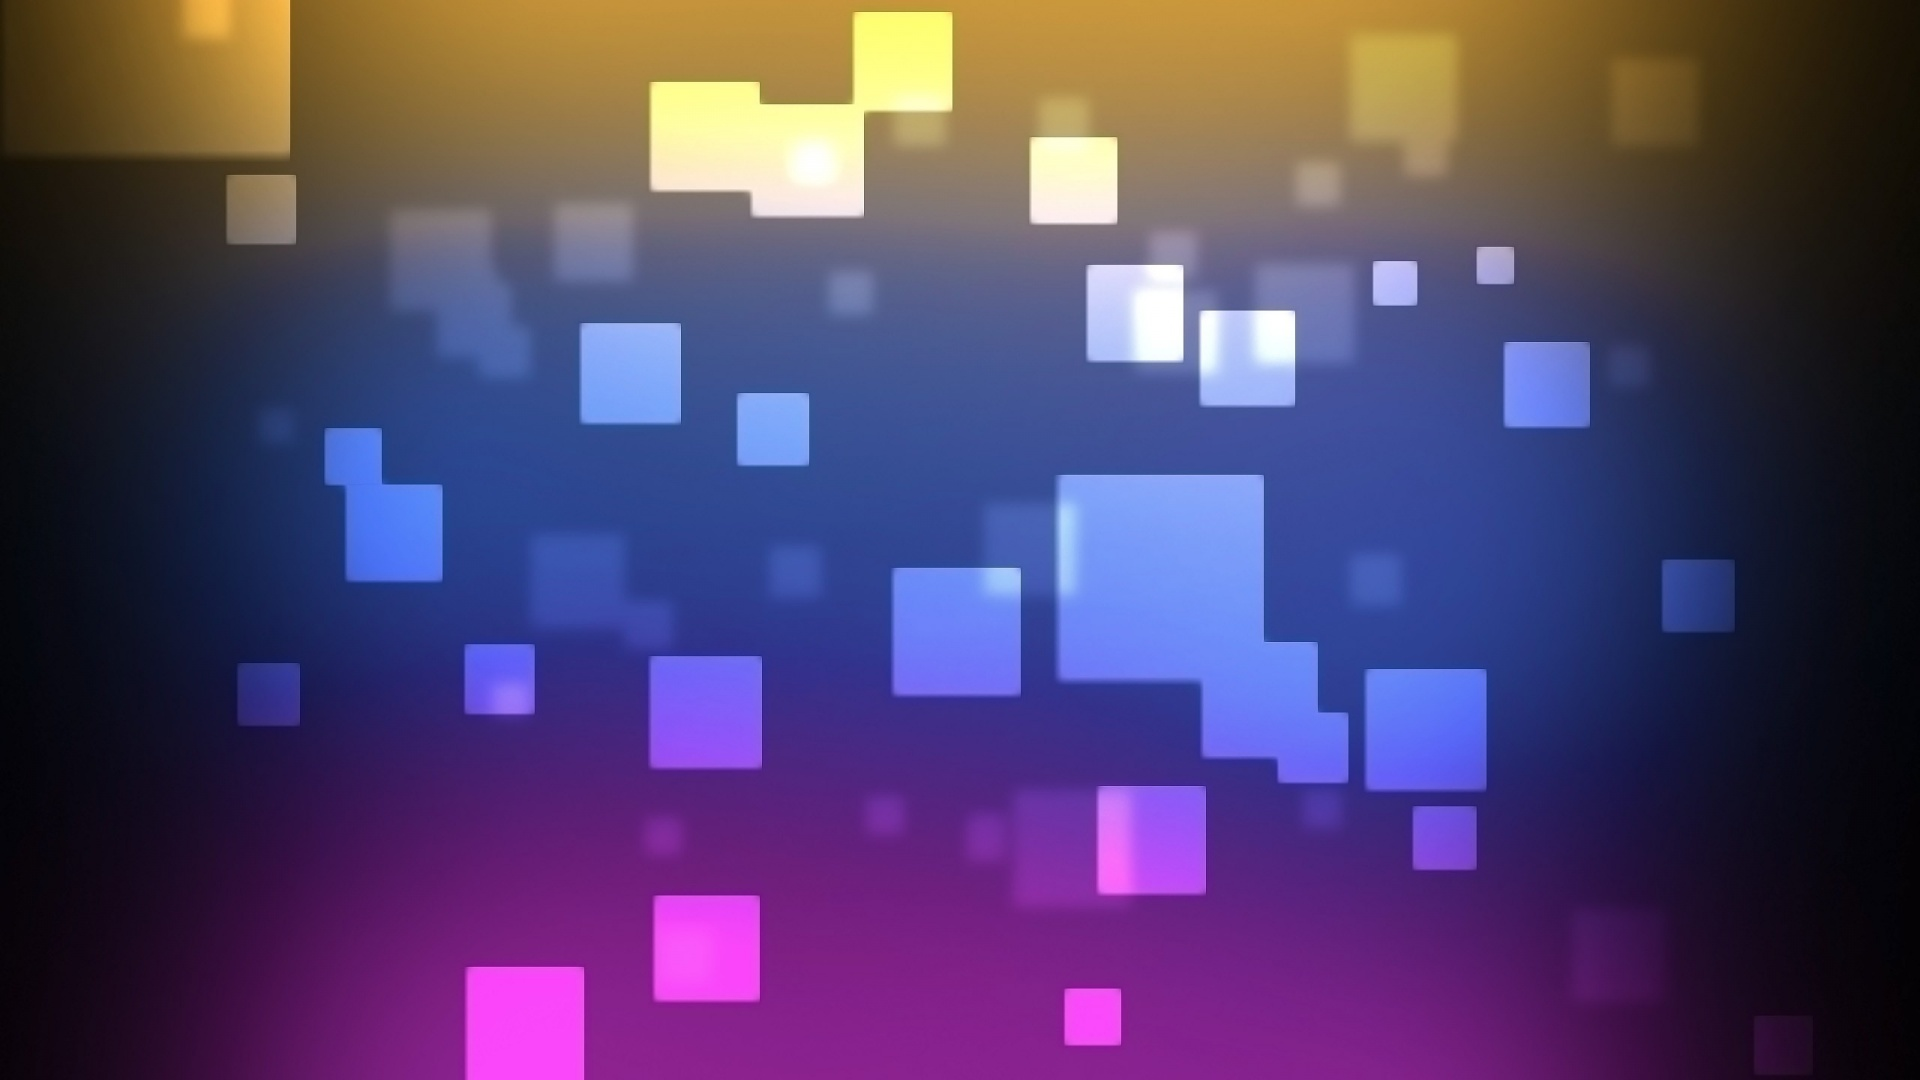 1920x1080 purple and blue abstract squares gradient desktop pc and